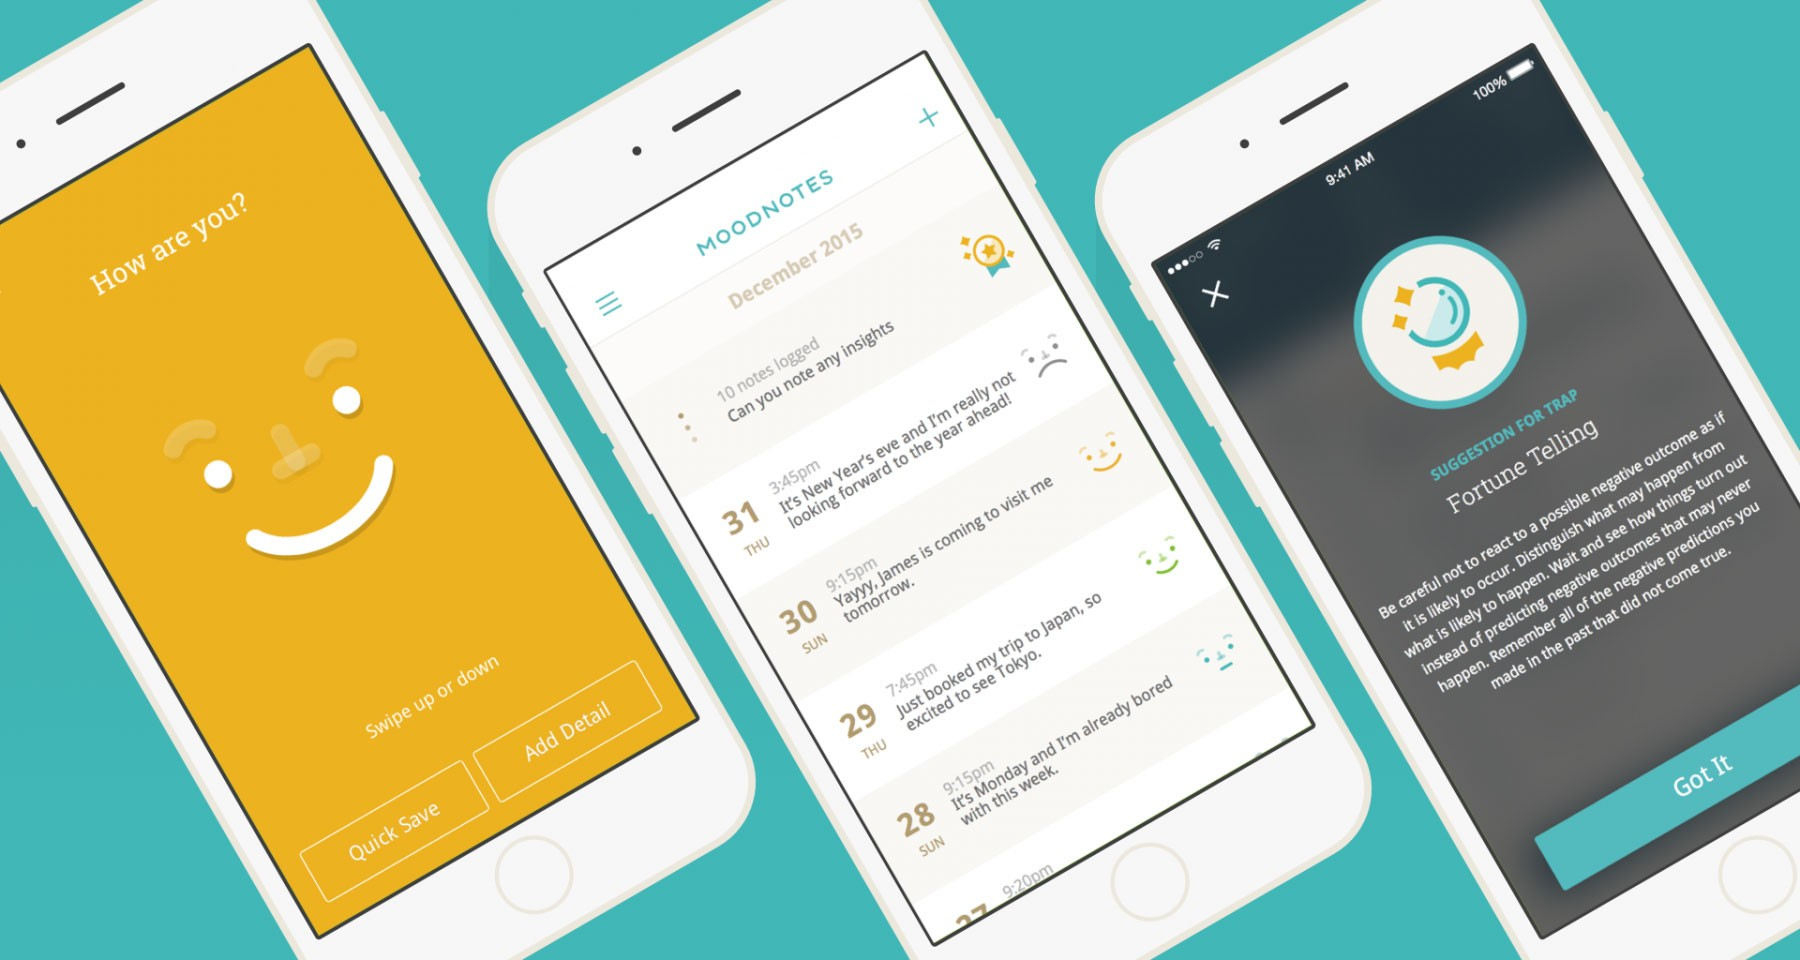 View the 10 Most Downloaded Apps to Help Manage Anxiety